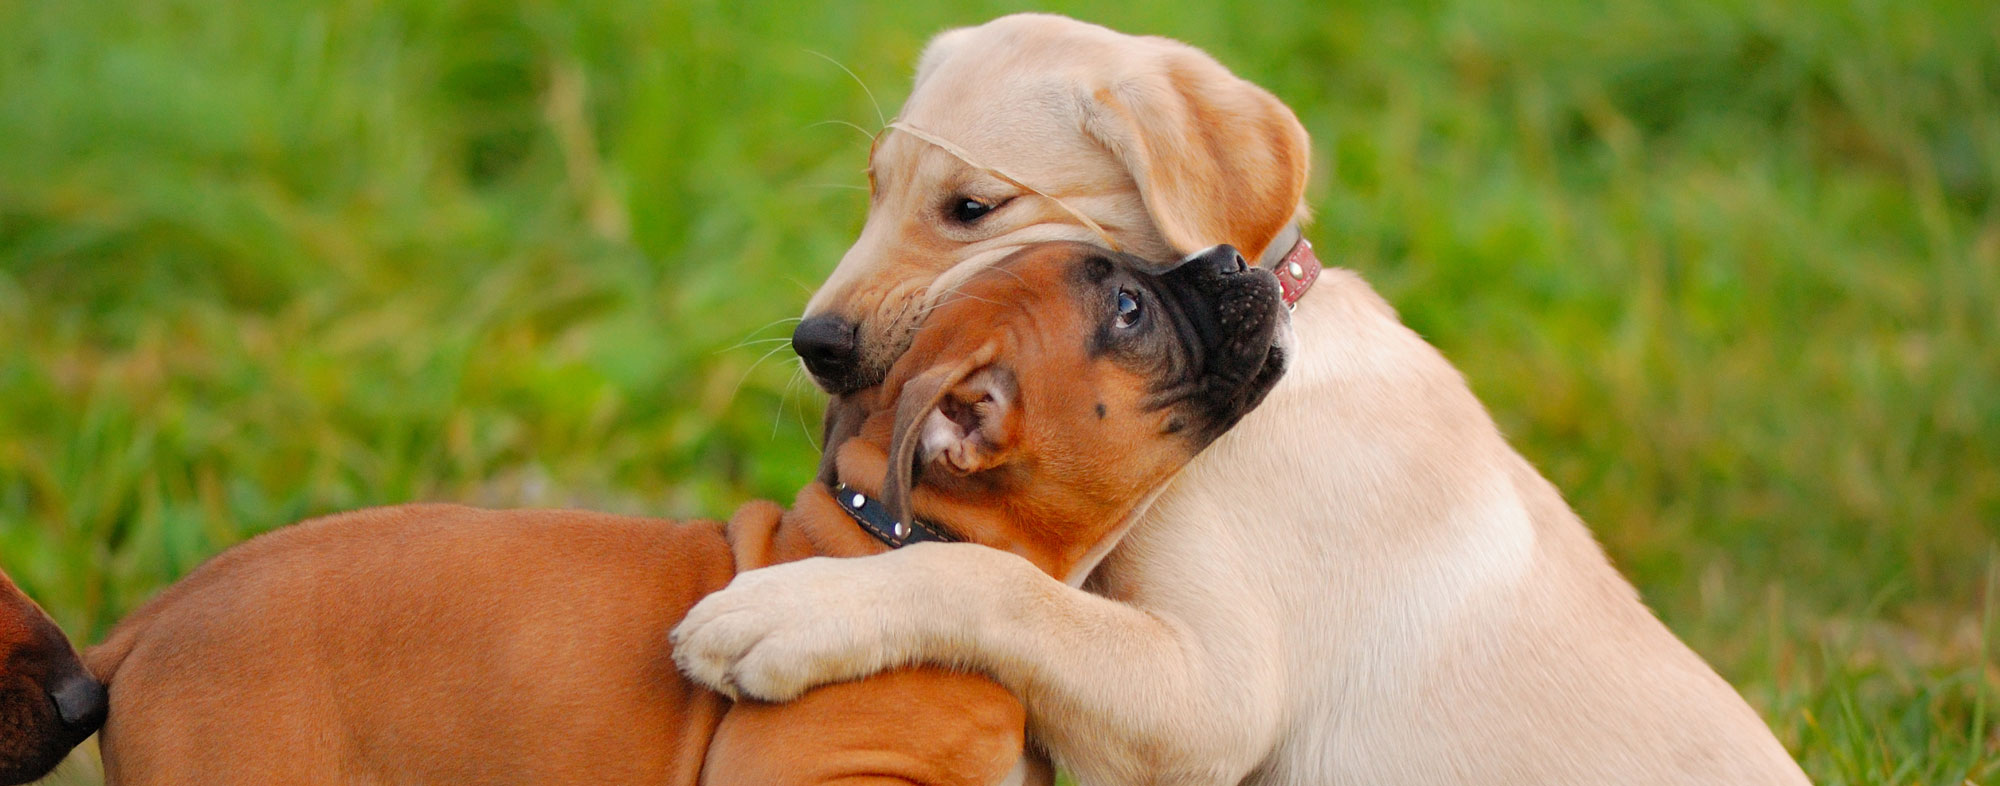 By playing with other animals, your puppy will socialize properly